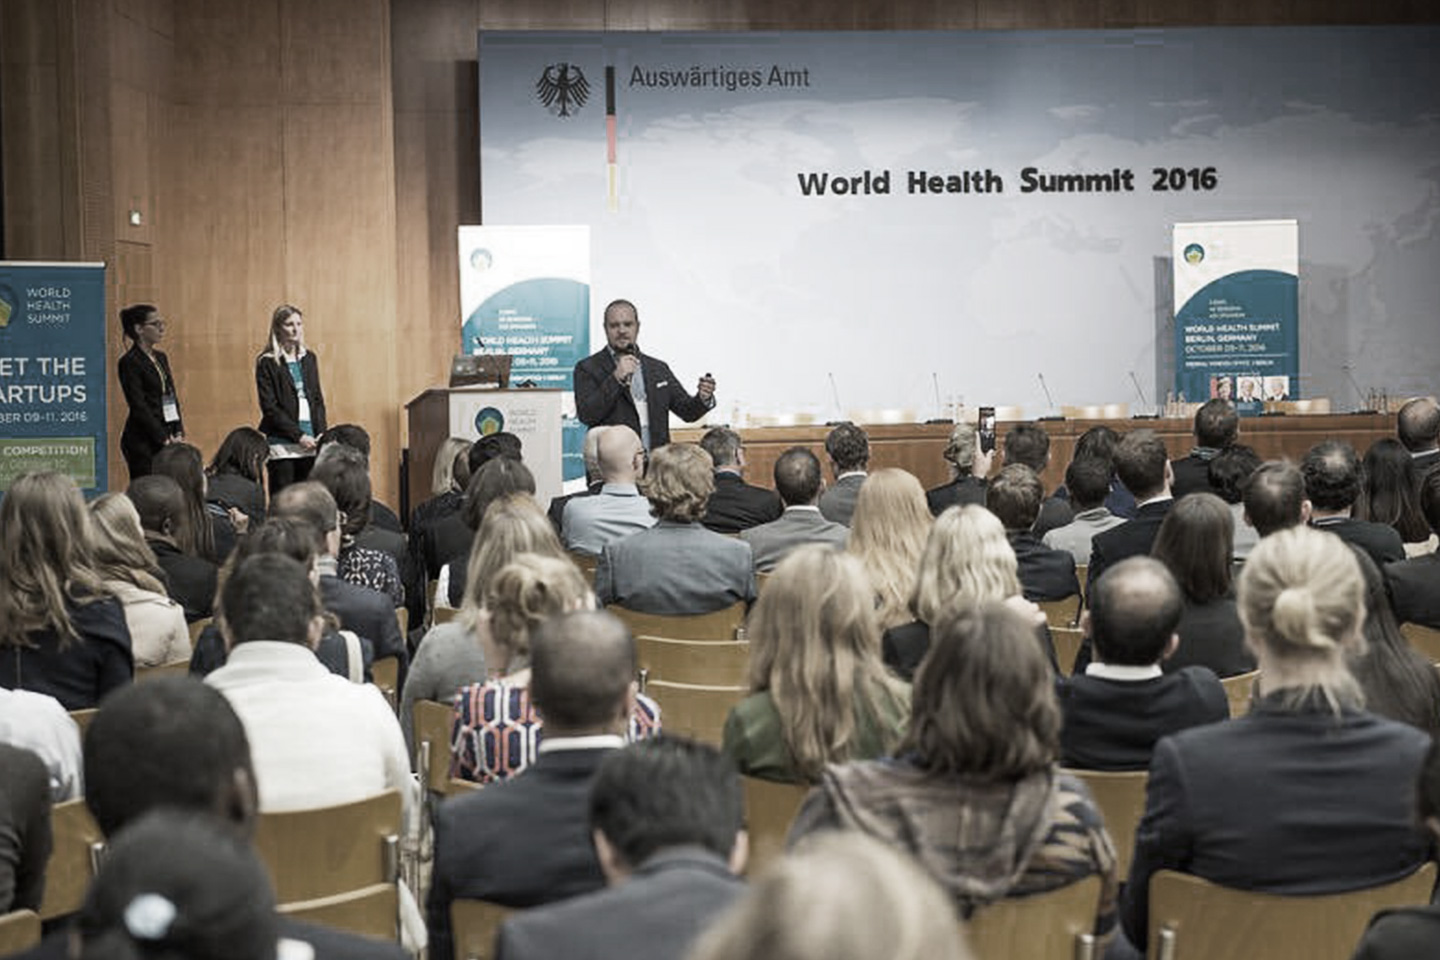 World Health Summit 2016